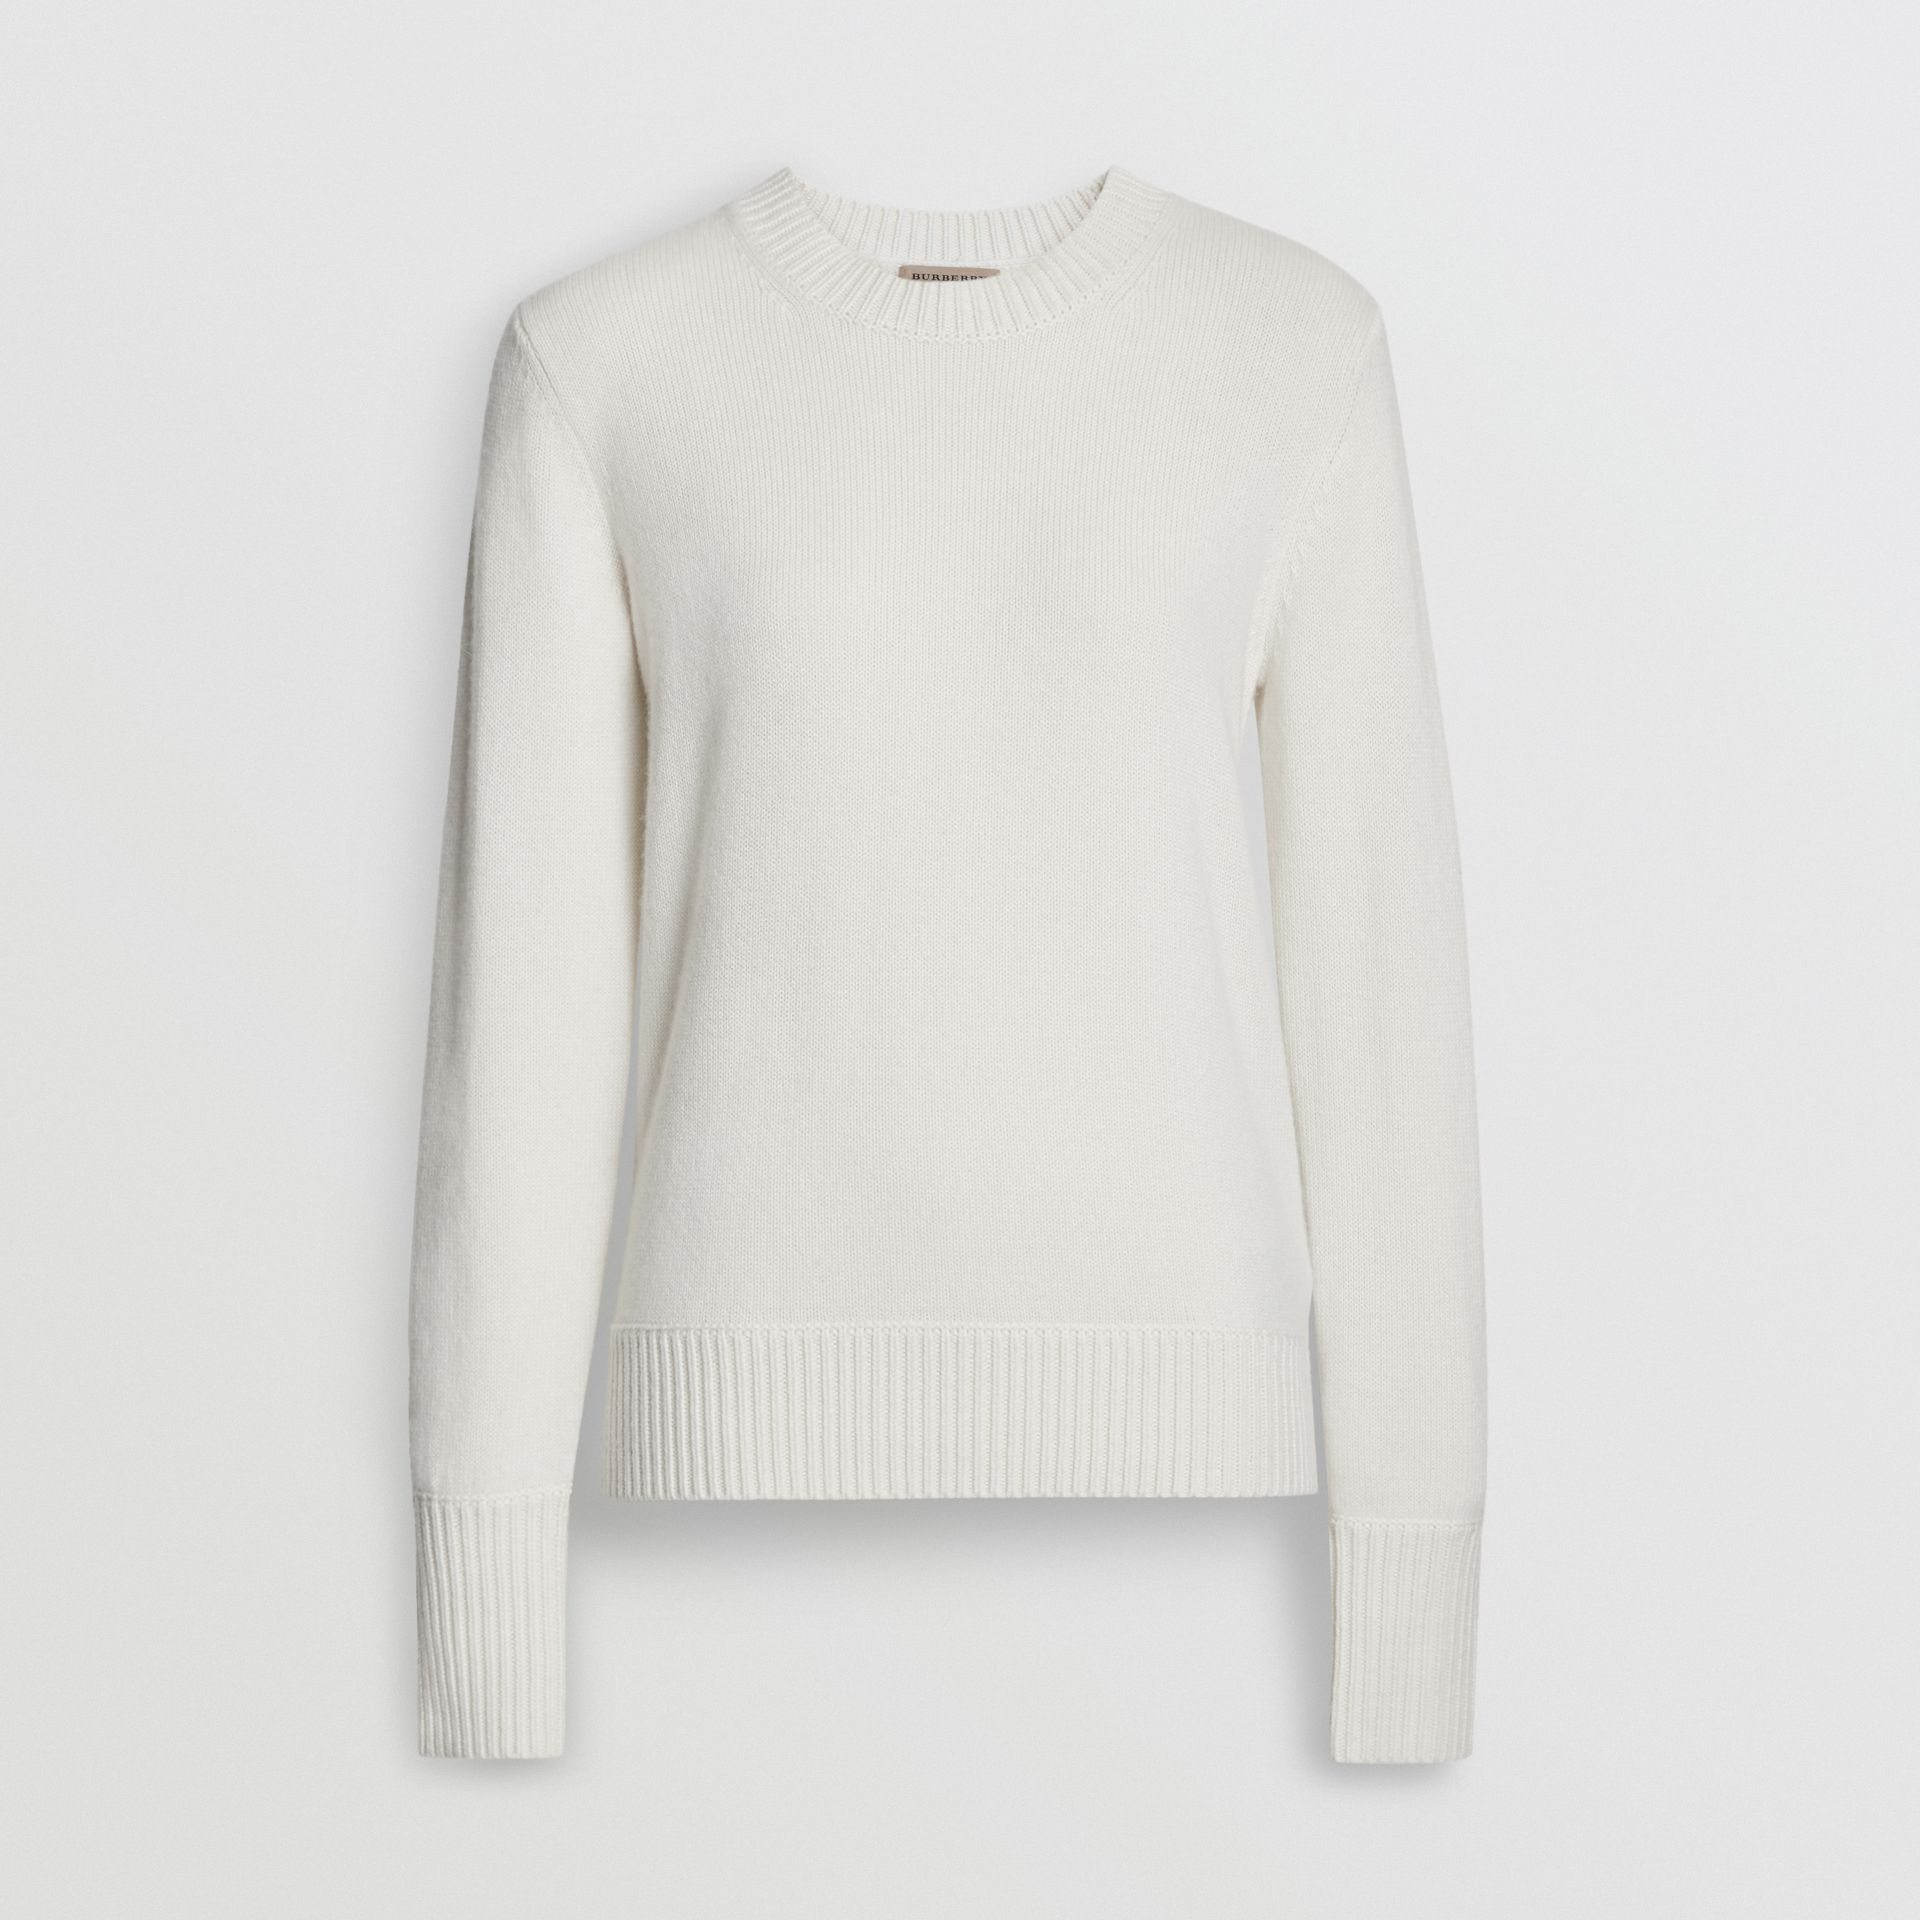 Archive Logo Appliqué Cashmere Sweater in White - Women | Burberry Canada - gallery image 3